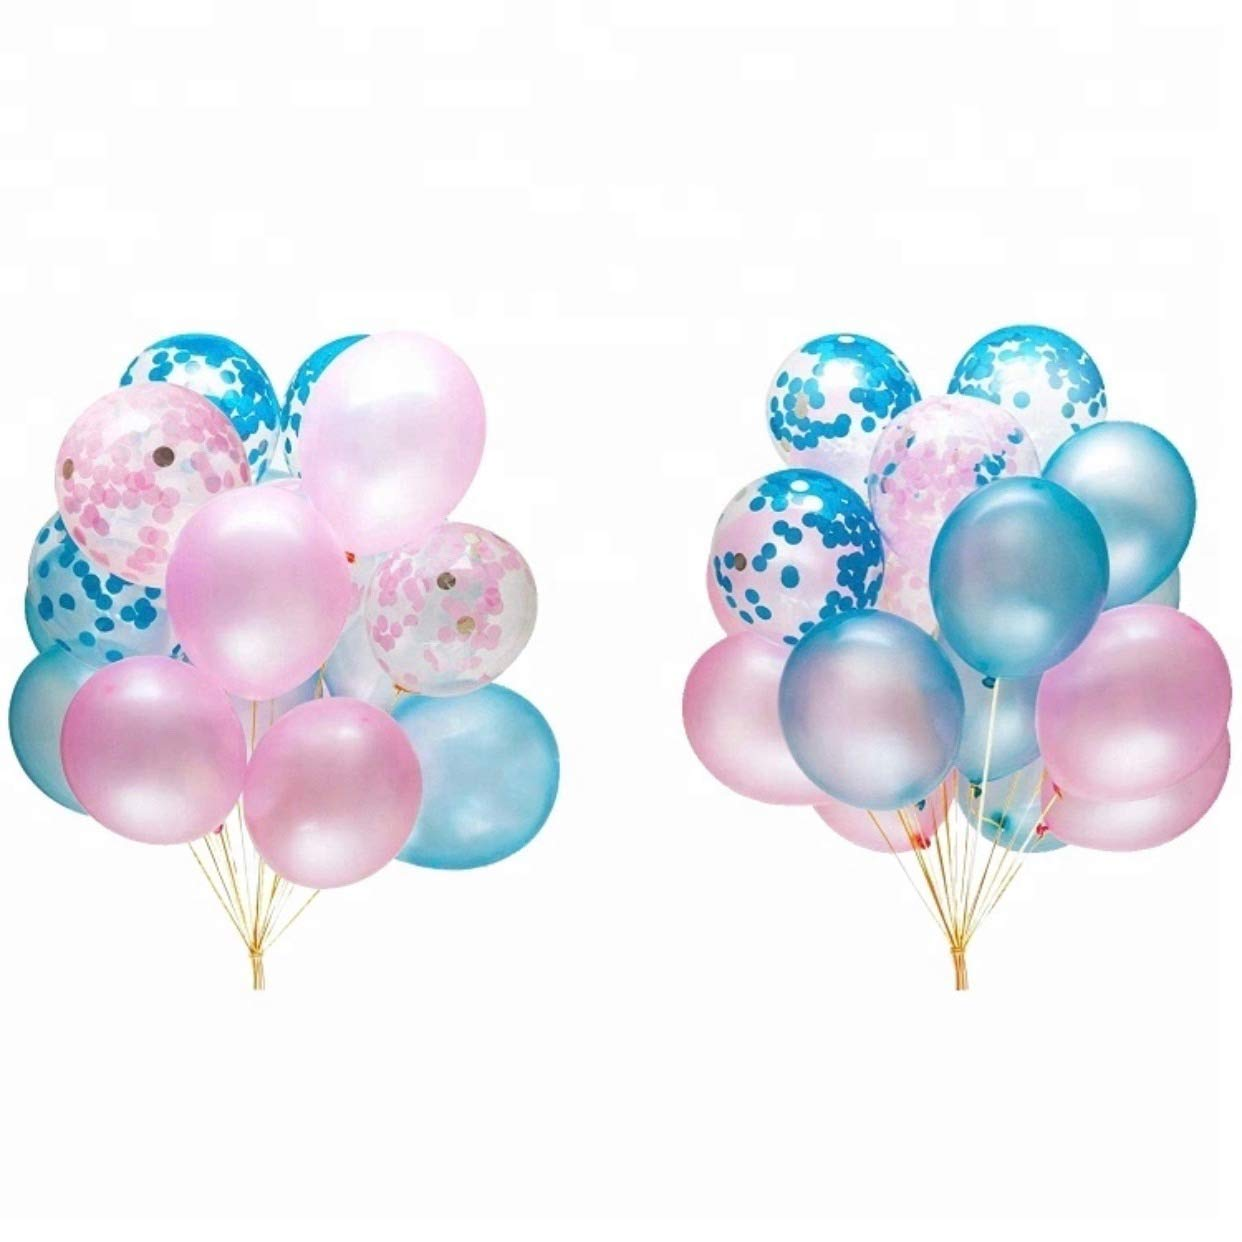 Gender Reveal Party Supplies - Gender Reveal Decorations with Jumbo Black Gender Reveal Balloon, Blue & Pink Confetti Balloons, Photo Props, Banner Decorations, Team Boy & Team Girl Stickers and Mom to Be Sash